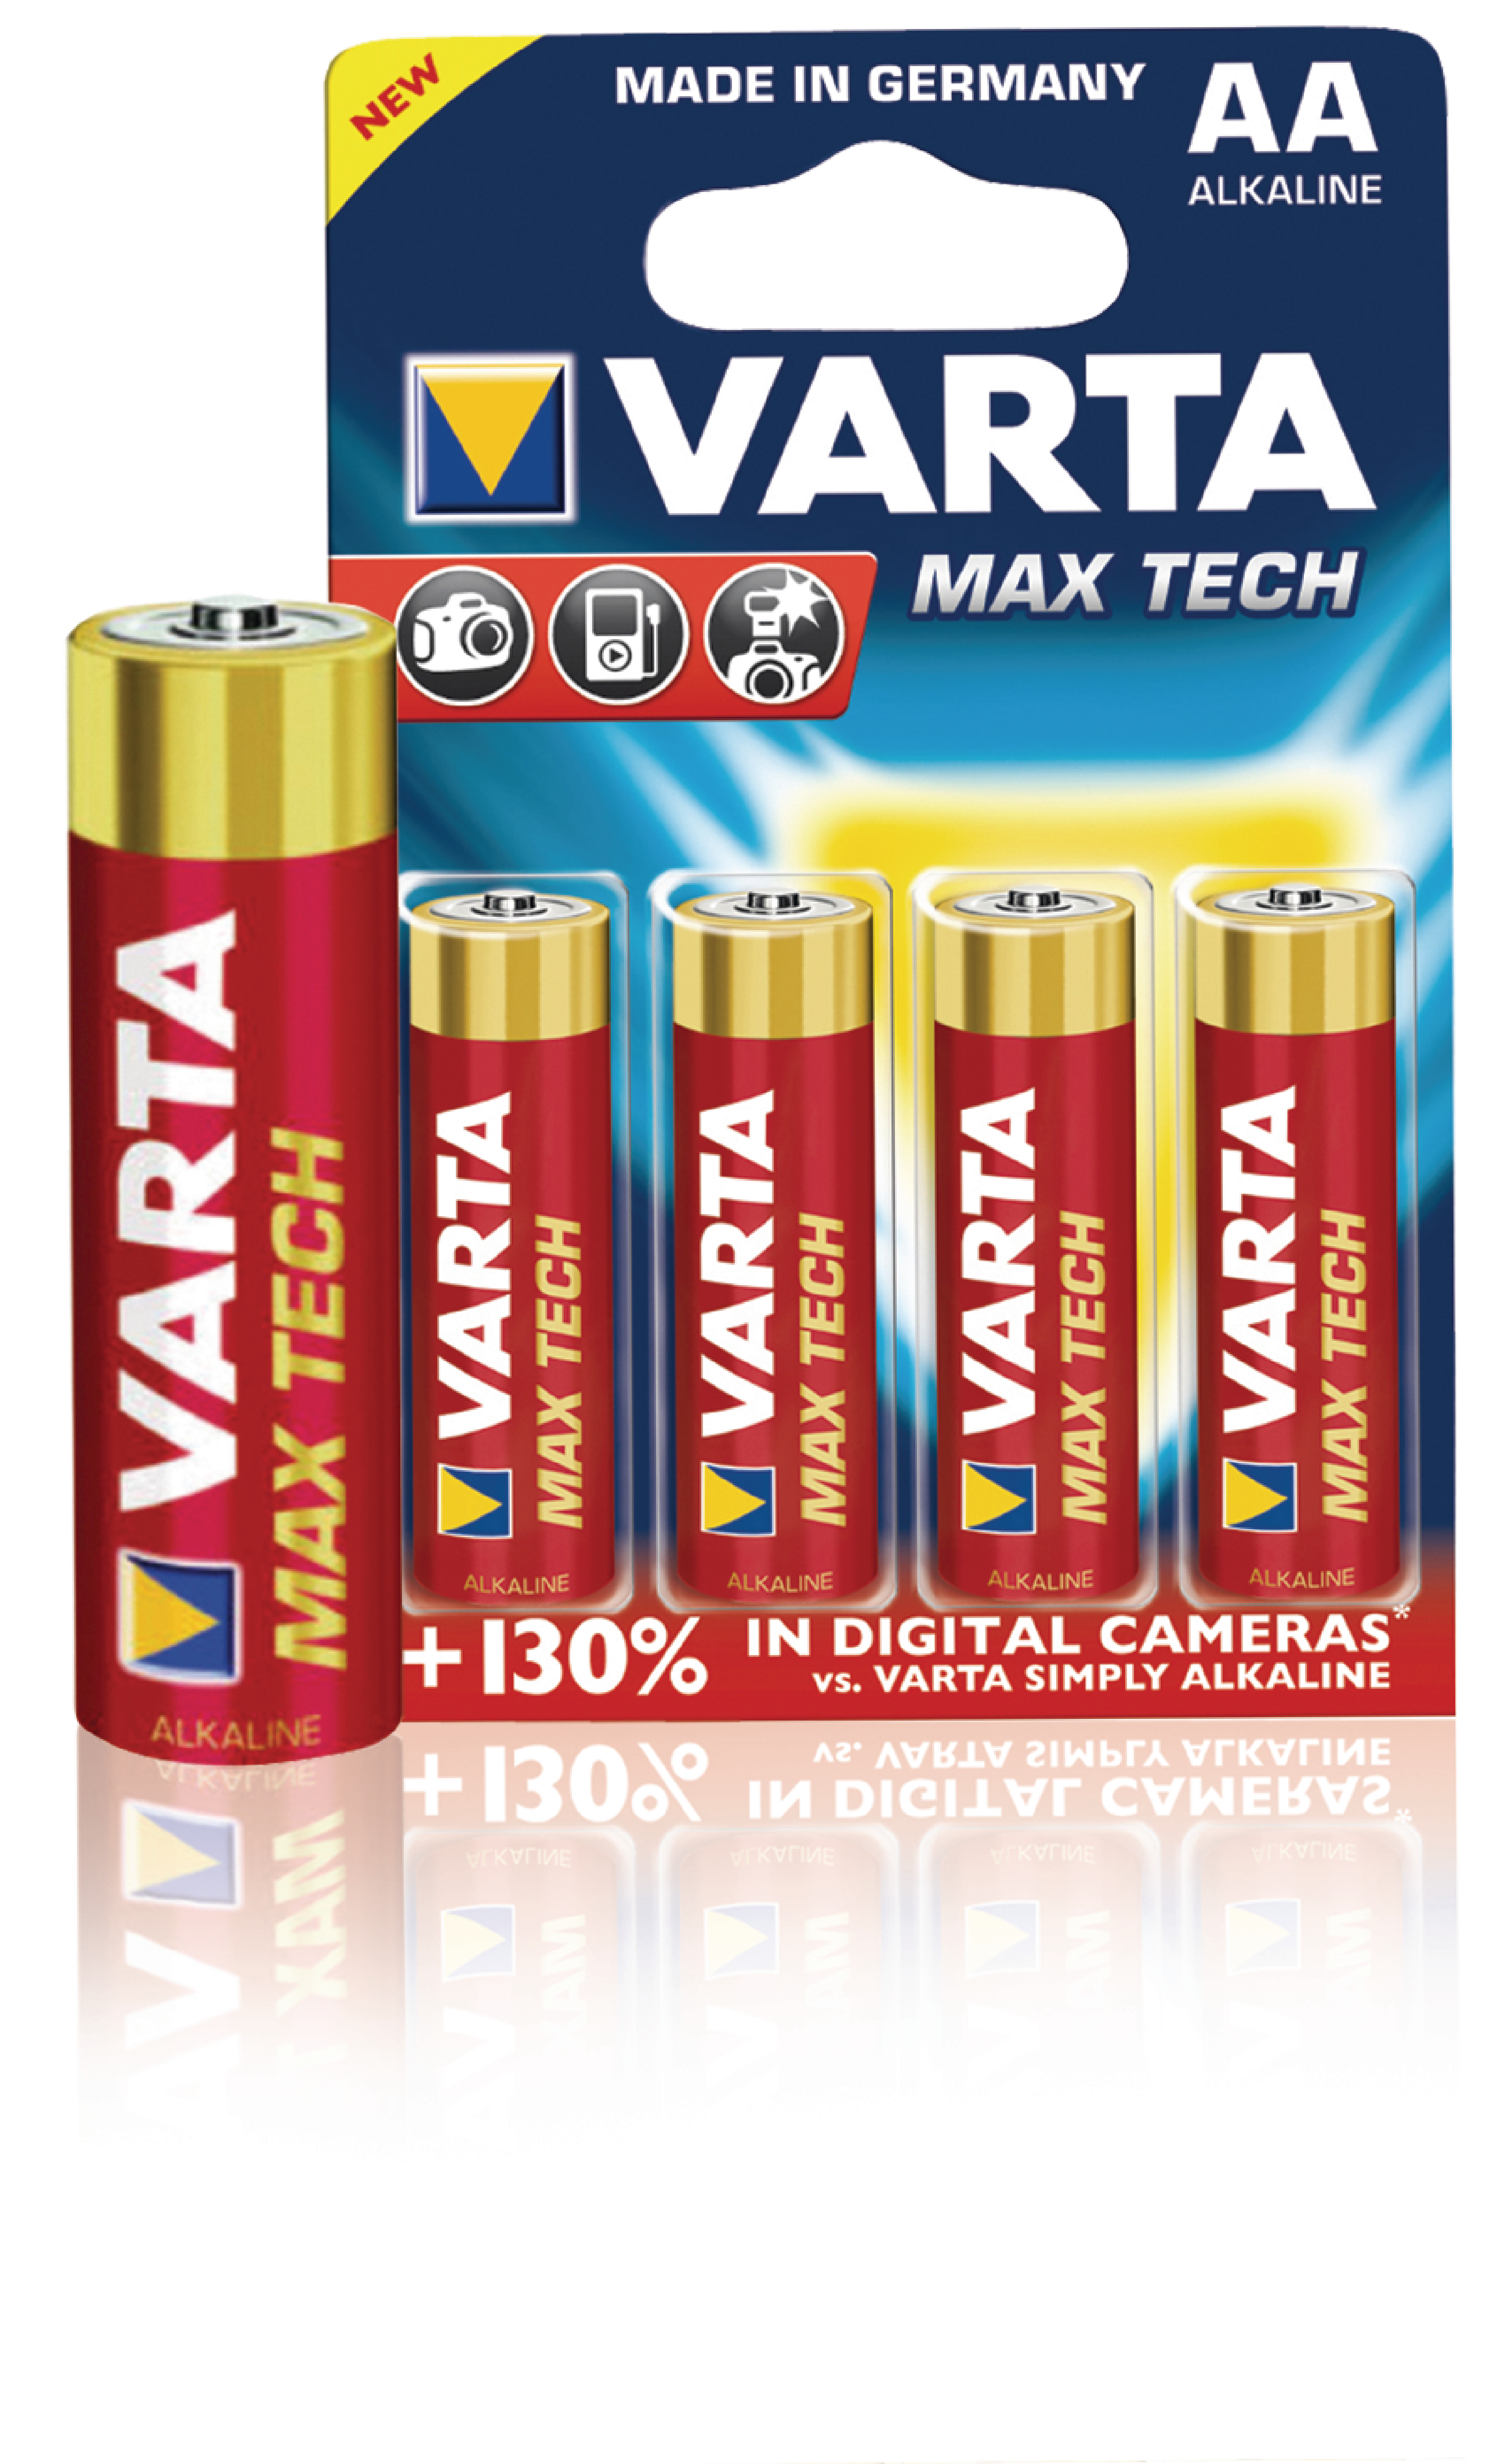 varta 4706 4b varta alkaline battery aa 1 5 v max tech. Black Bedroom Furniture Sets. Home Design Ideas